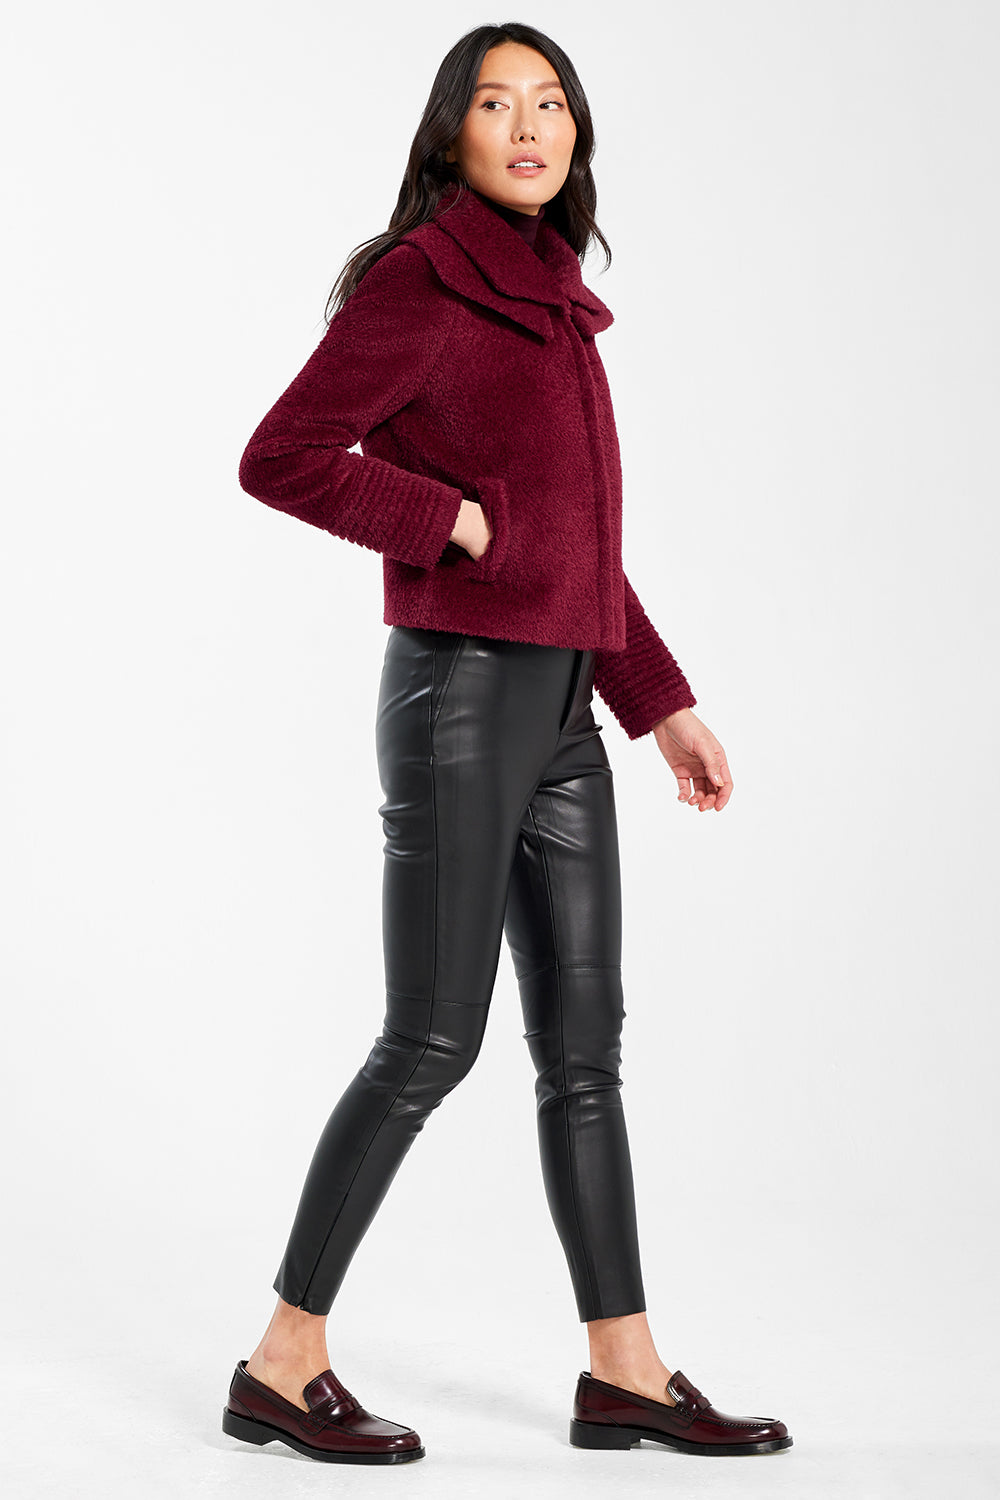 Sentaler Bouclé Alpaca Moto Jacket with Signature Double Collar featured in Bouclé Alpaca and available in Garnet Red. Seen from side.